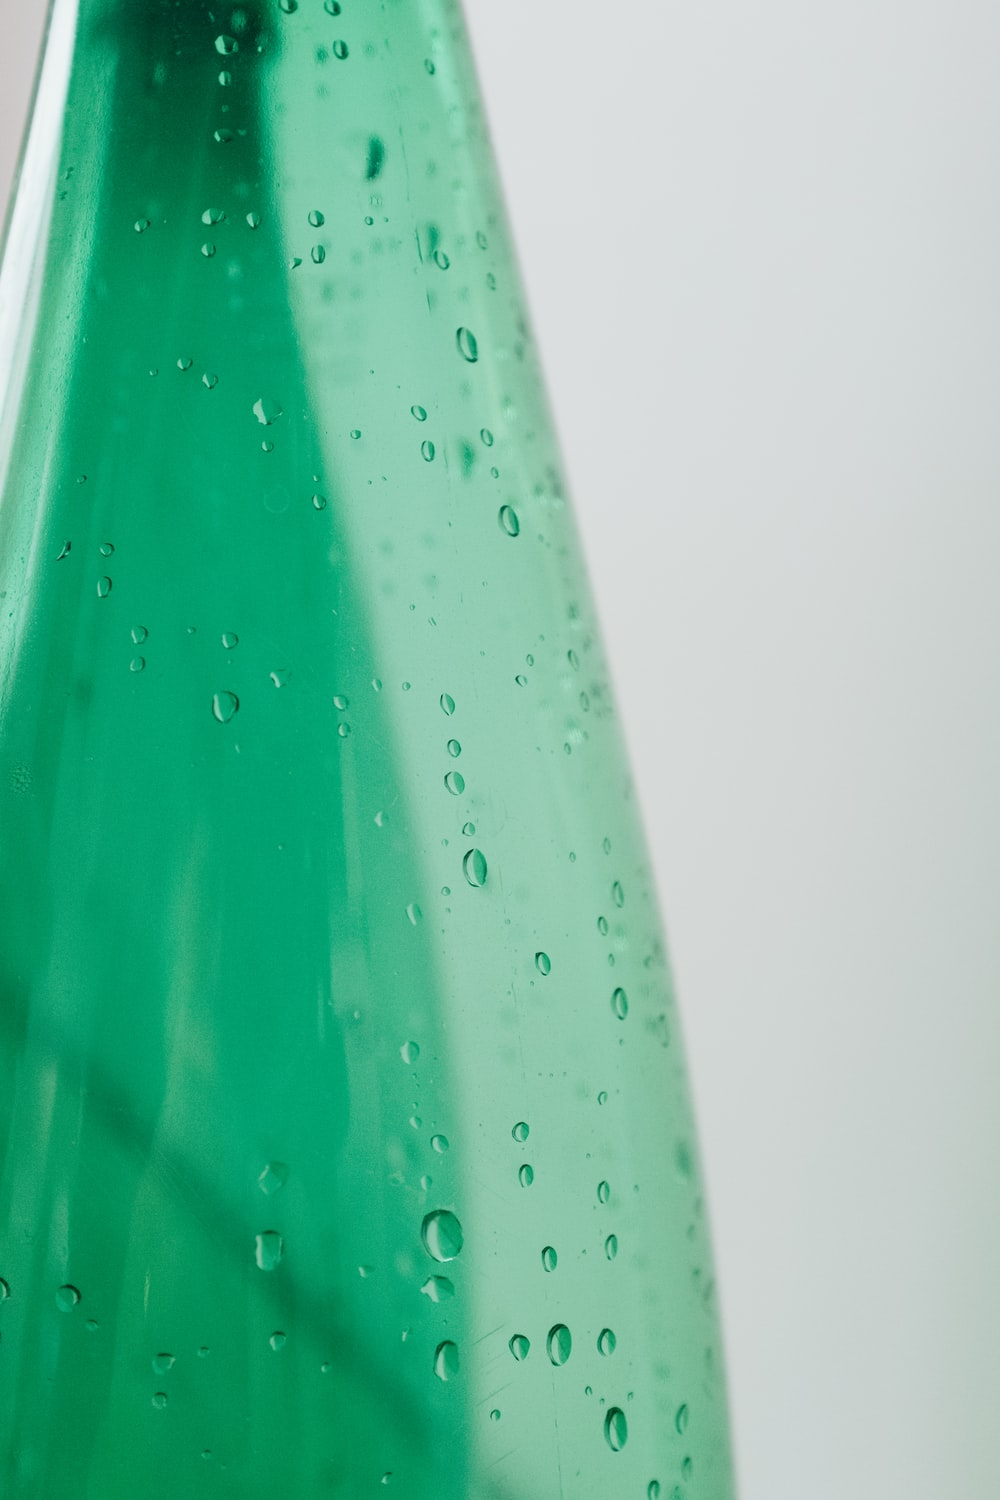 green plastic bottle with water droplets